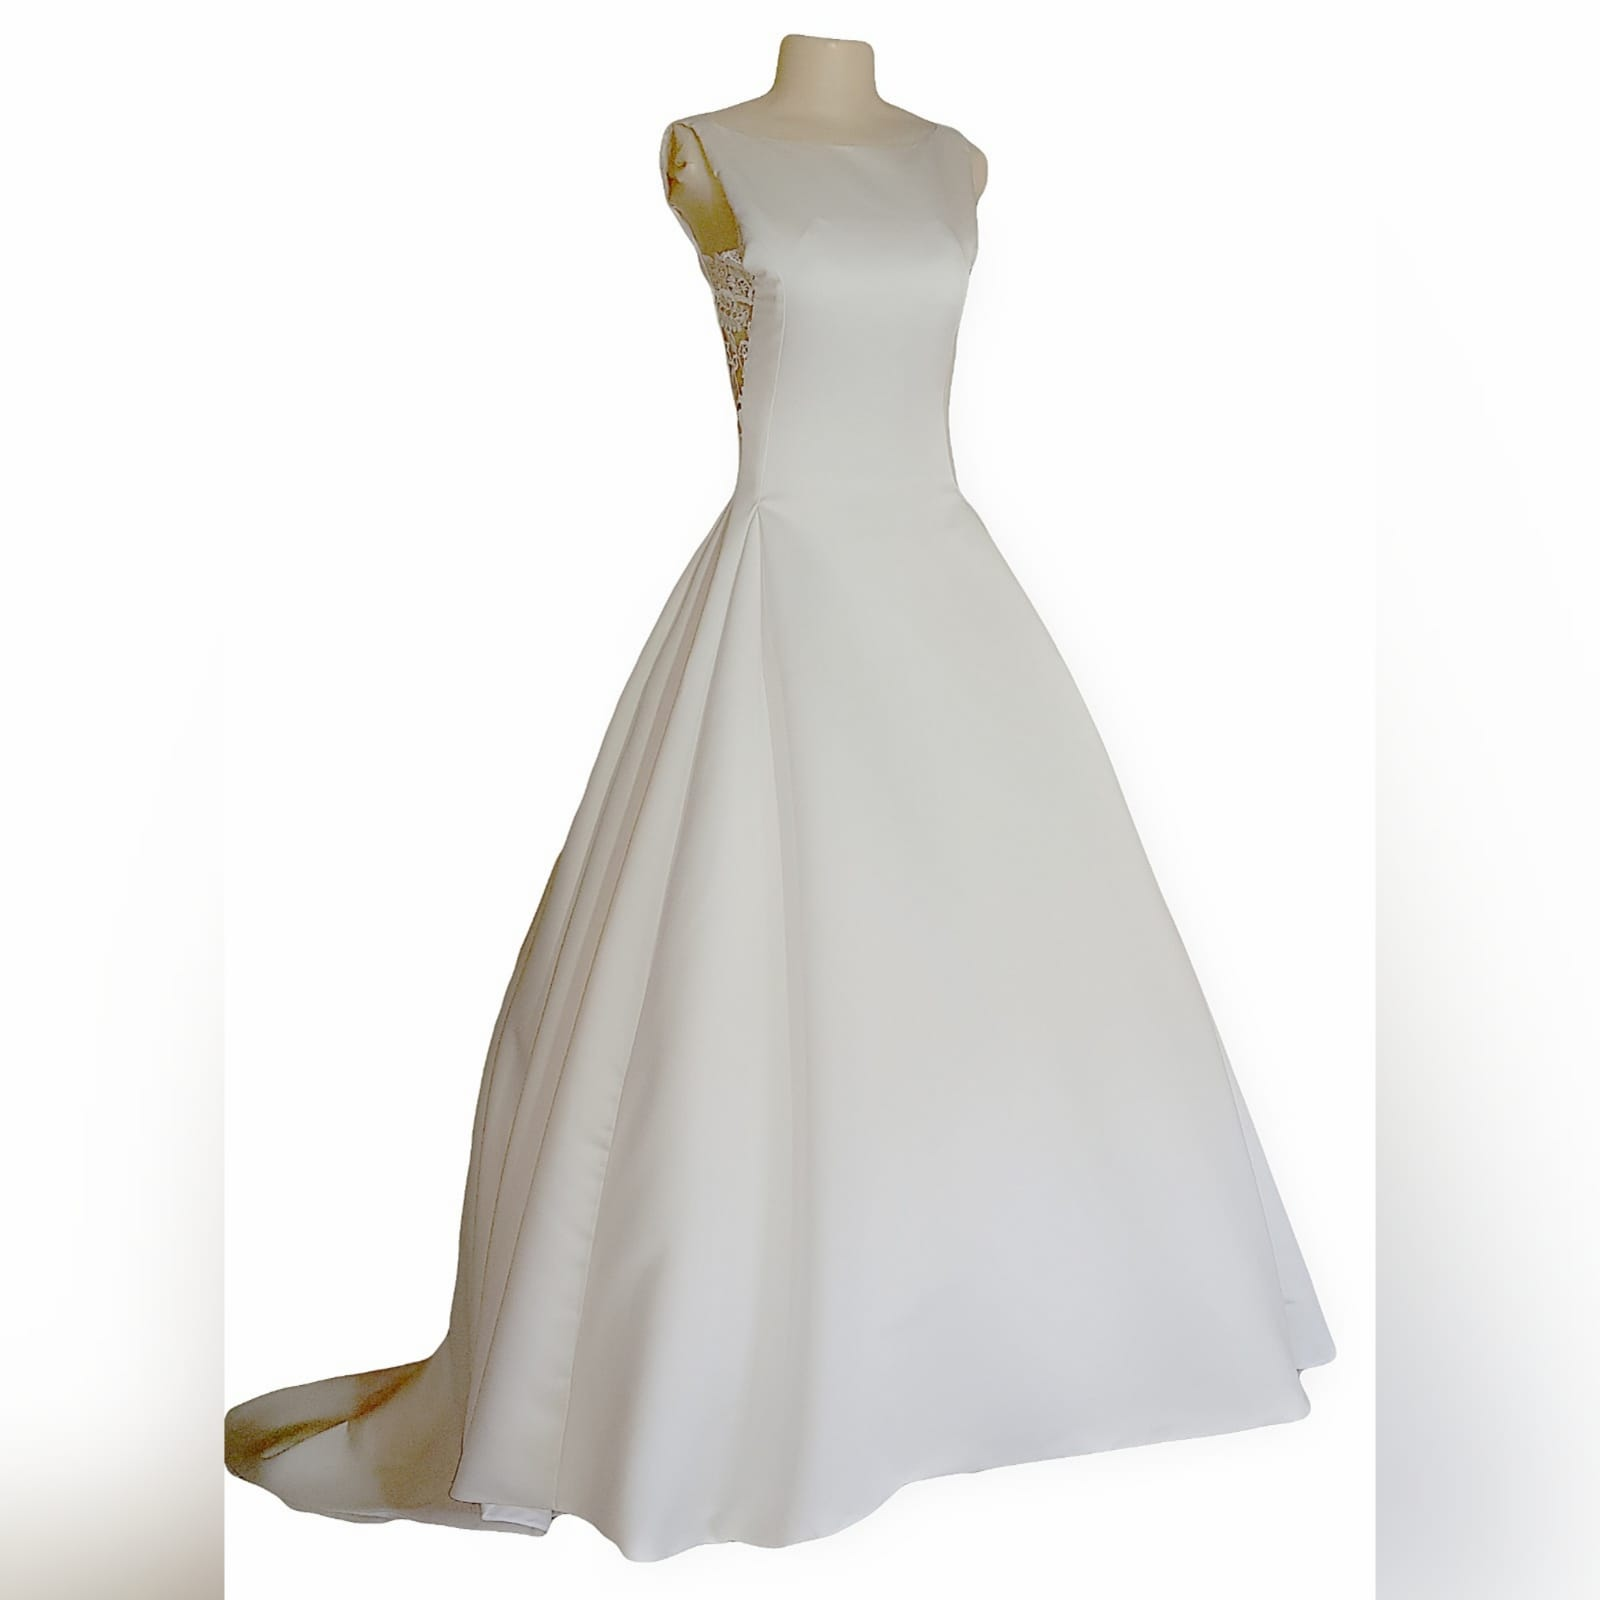 "Elegant satin wedding dress 4 <blockquote>""let yourself be drawn by the stronger pull of that which you truly love. "" rumi</blockquote> a gorgeous, elegant satin wedding dress created especially for my client. A classy fit with a bateau neckline, lace back and sides. Buttons all the way down till the edge of train adding that extra touch of sophistication. Designed with pockets to make life easier for the bride on her special day"